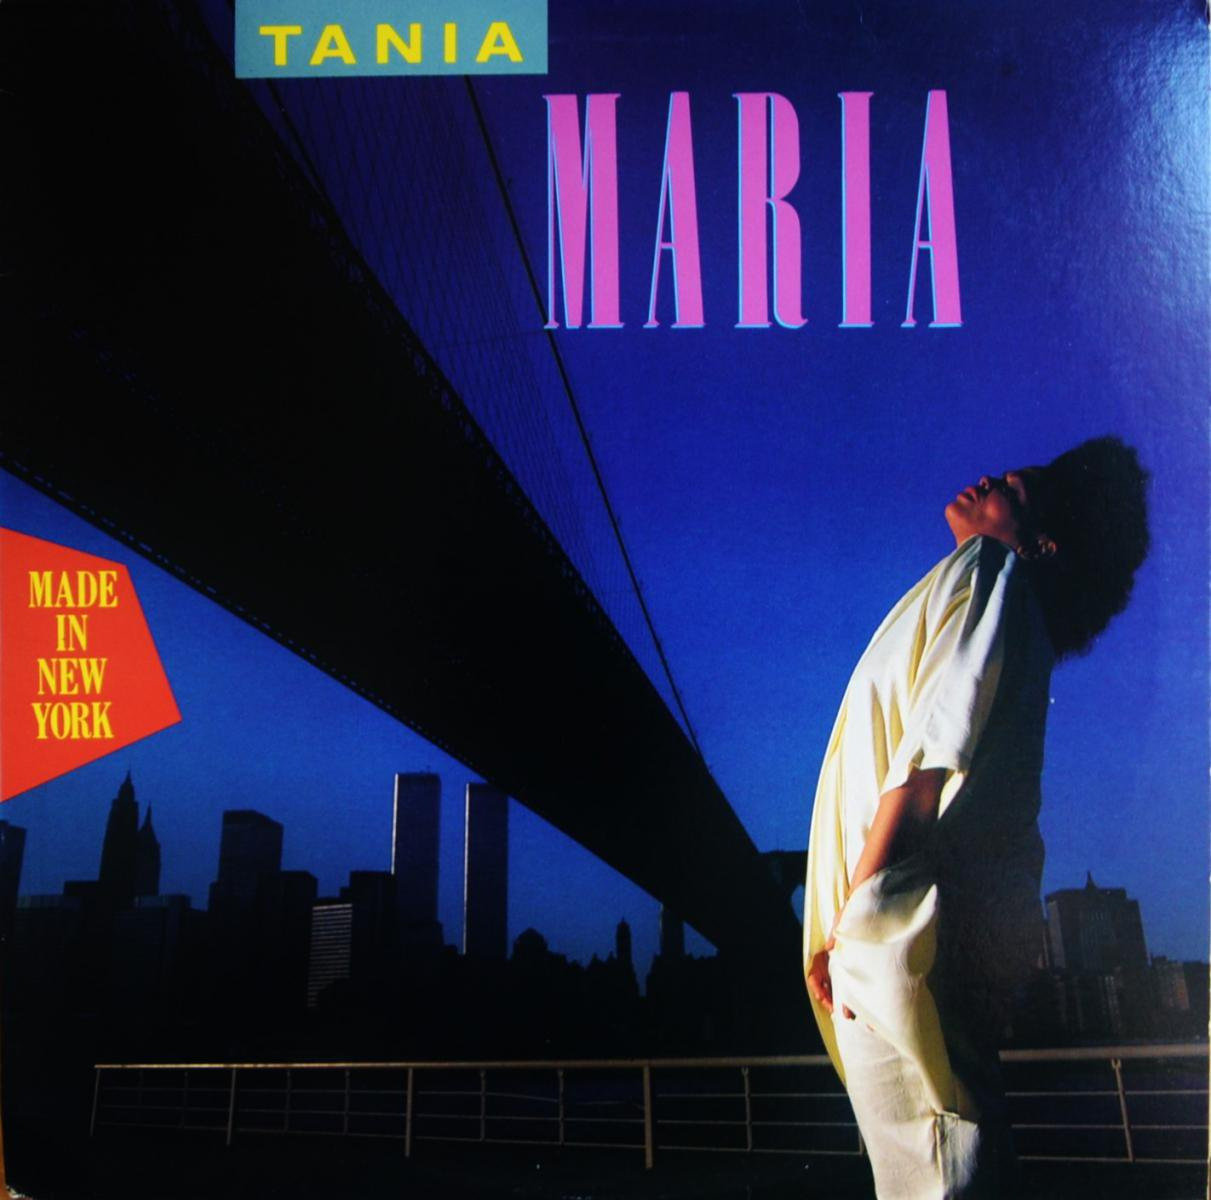 TANIA MARIA / MADE IN NEW YORK